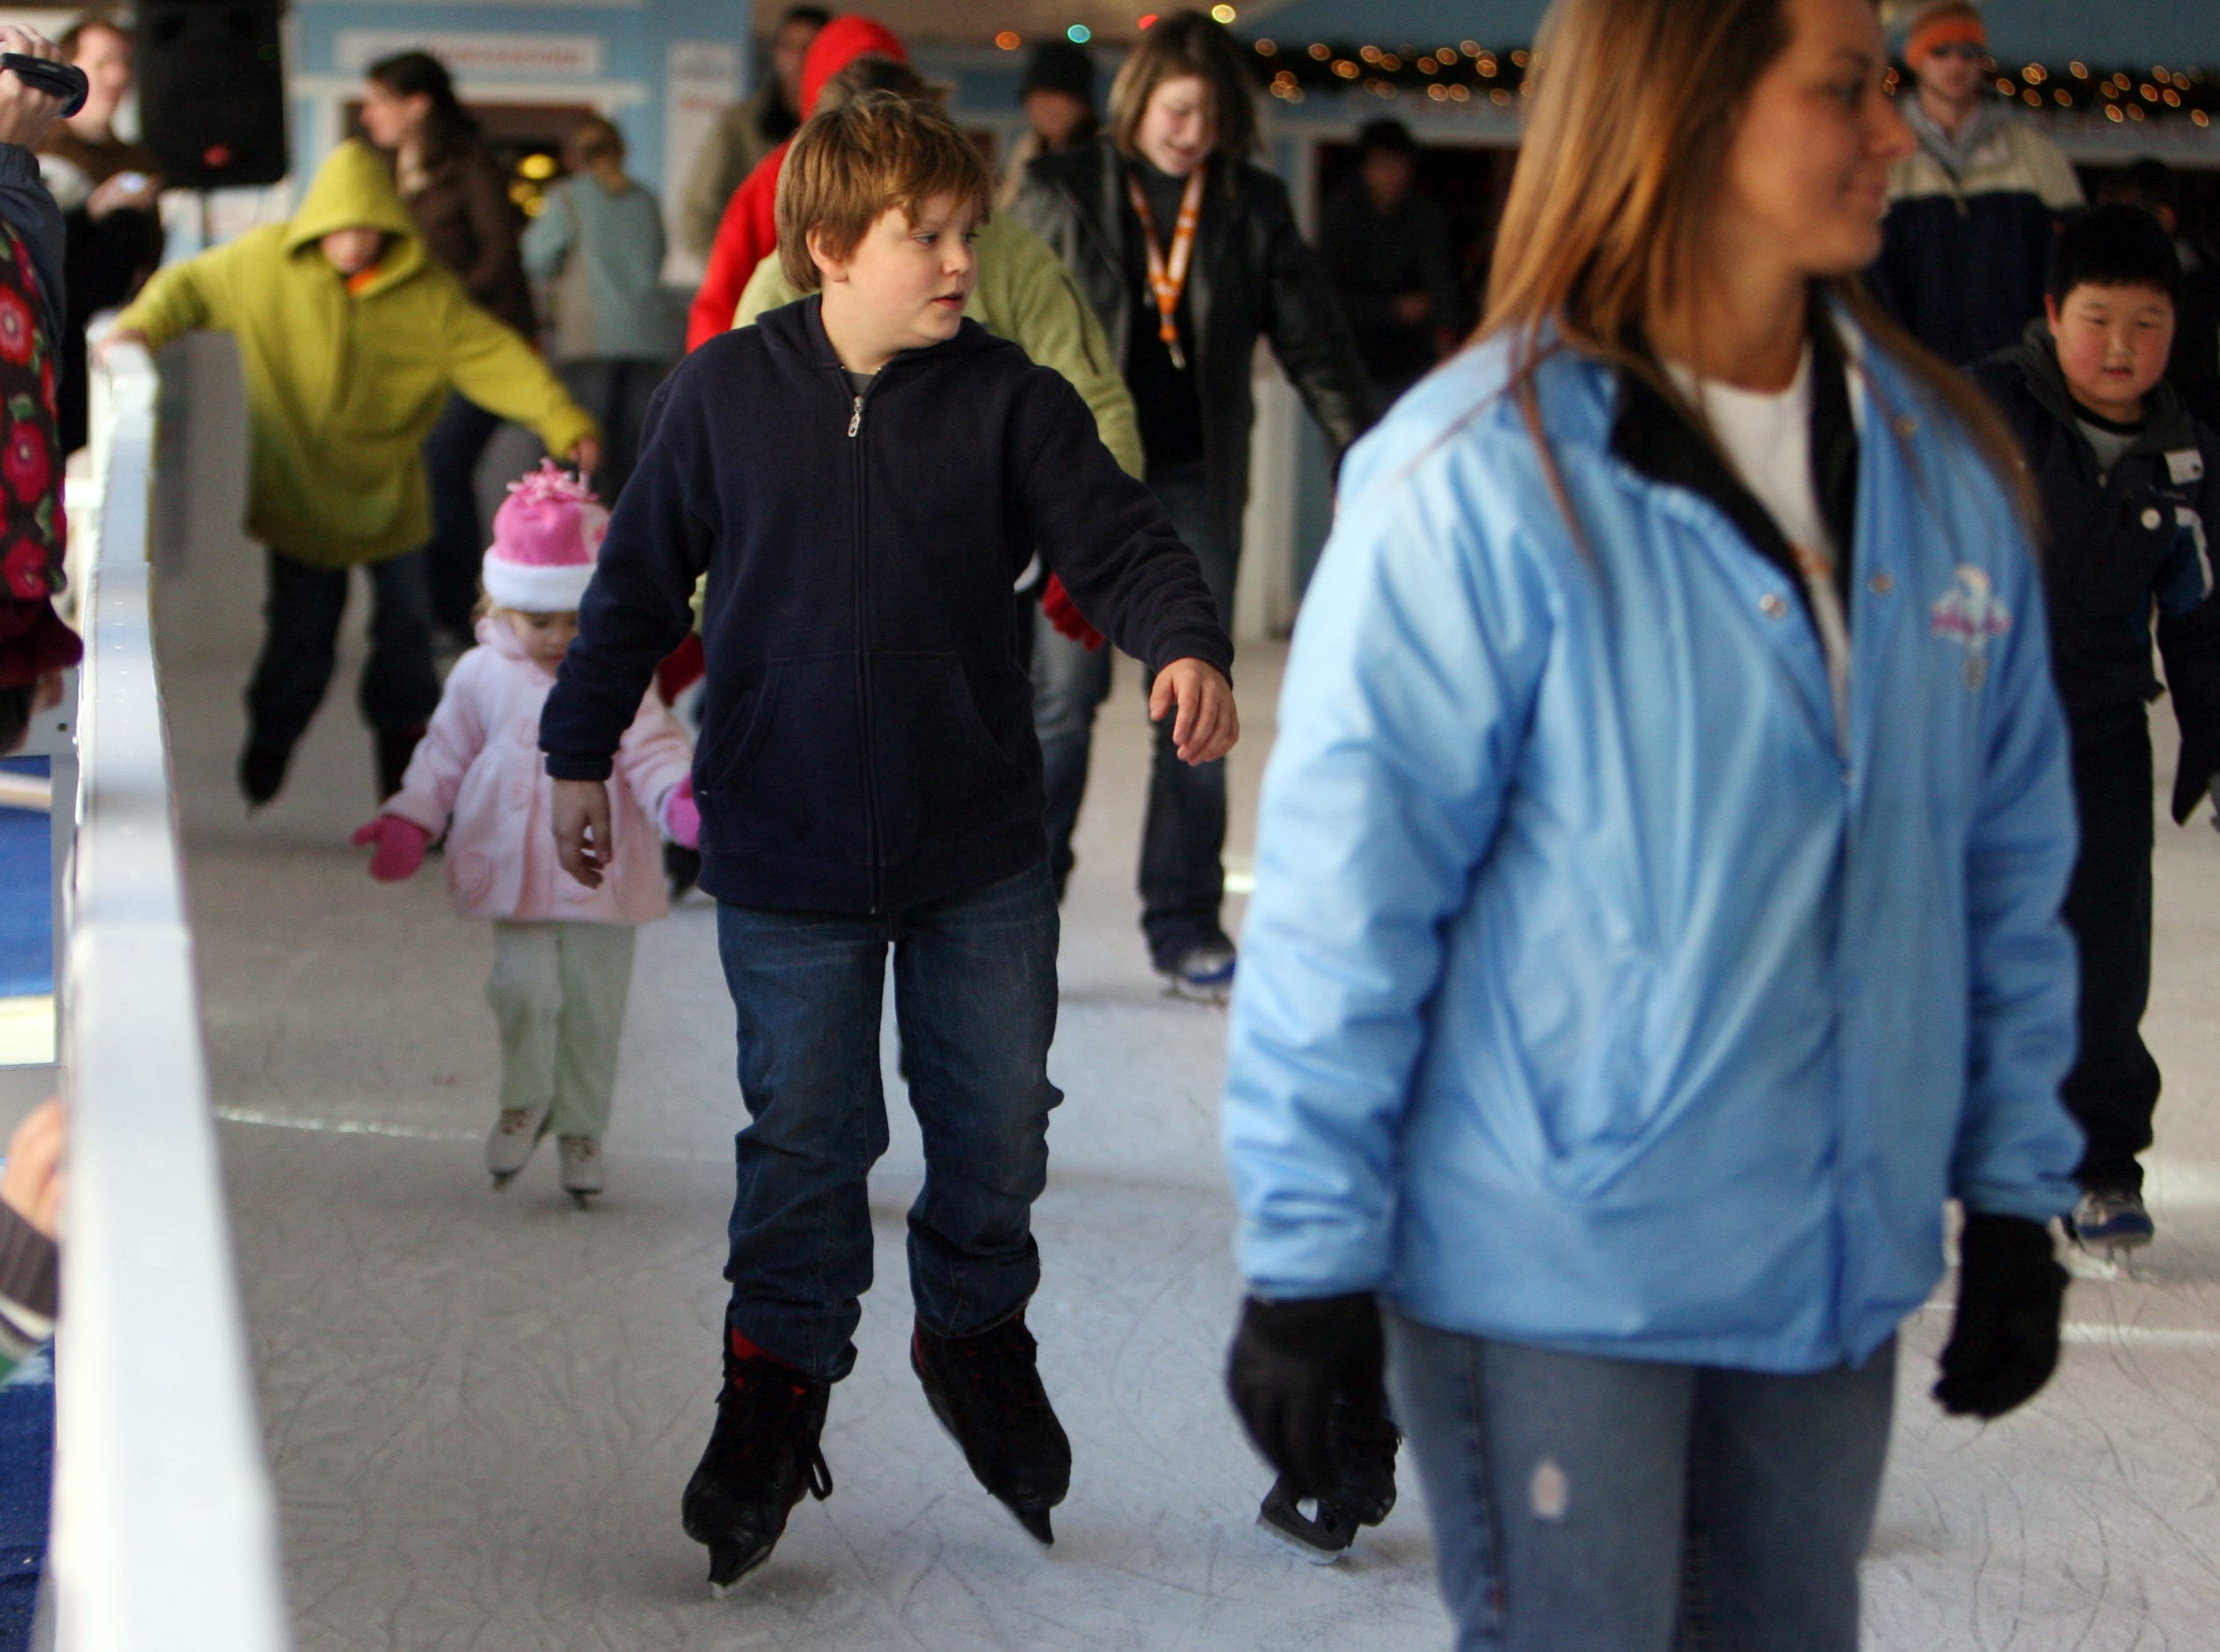 Ten year old Camruinn Morgan (cq), center,  glides along the ice skating rink on Market Square during Knoxville's Holidays on Ice on Friday, Nov. 27, 2009.